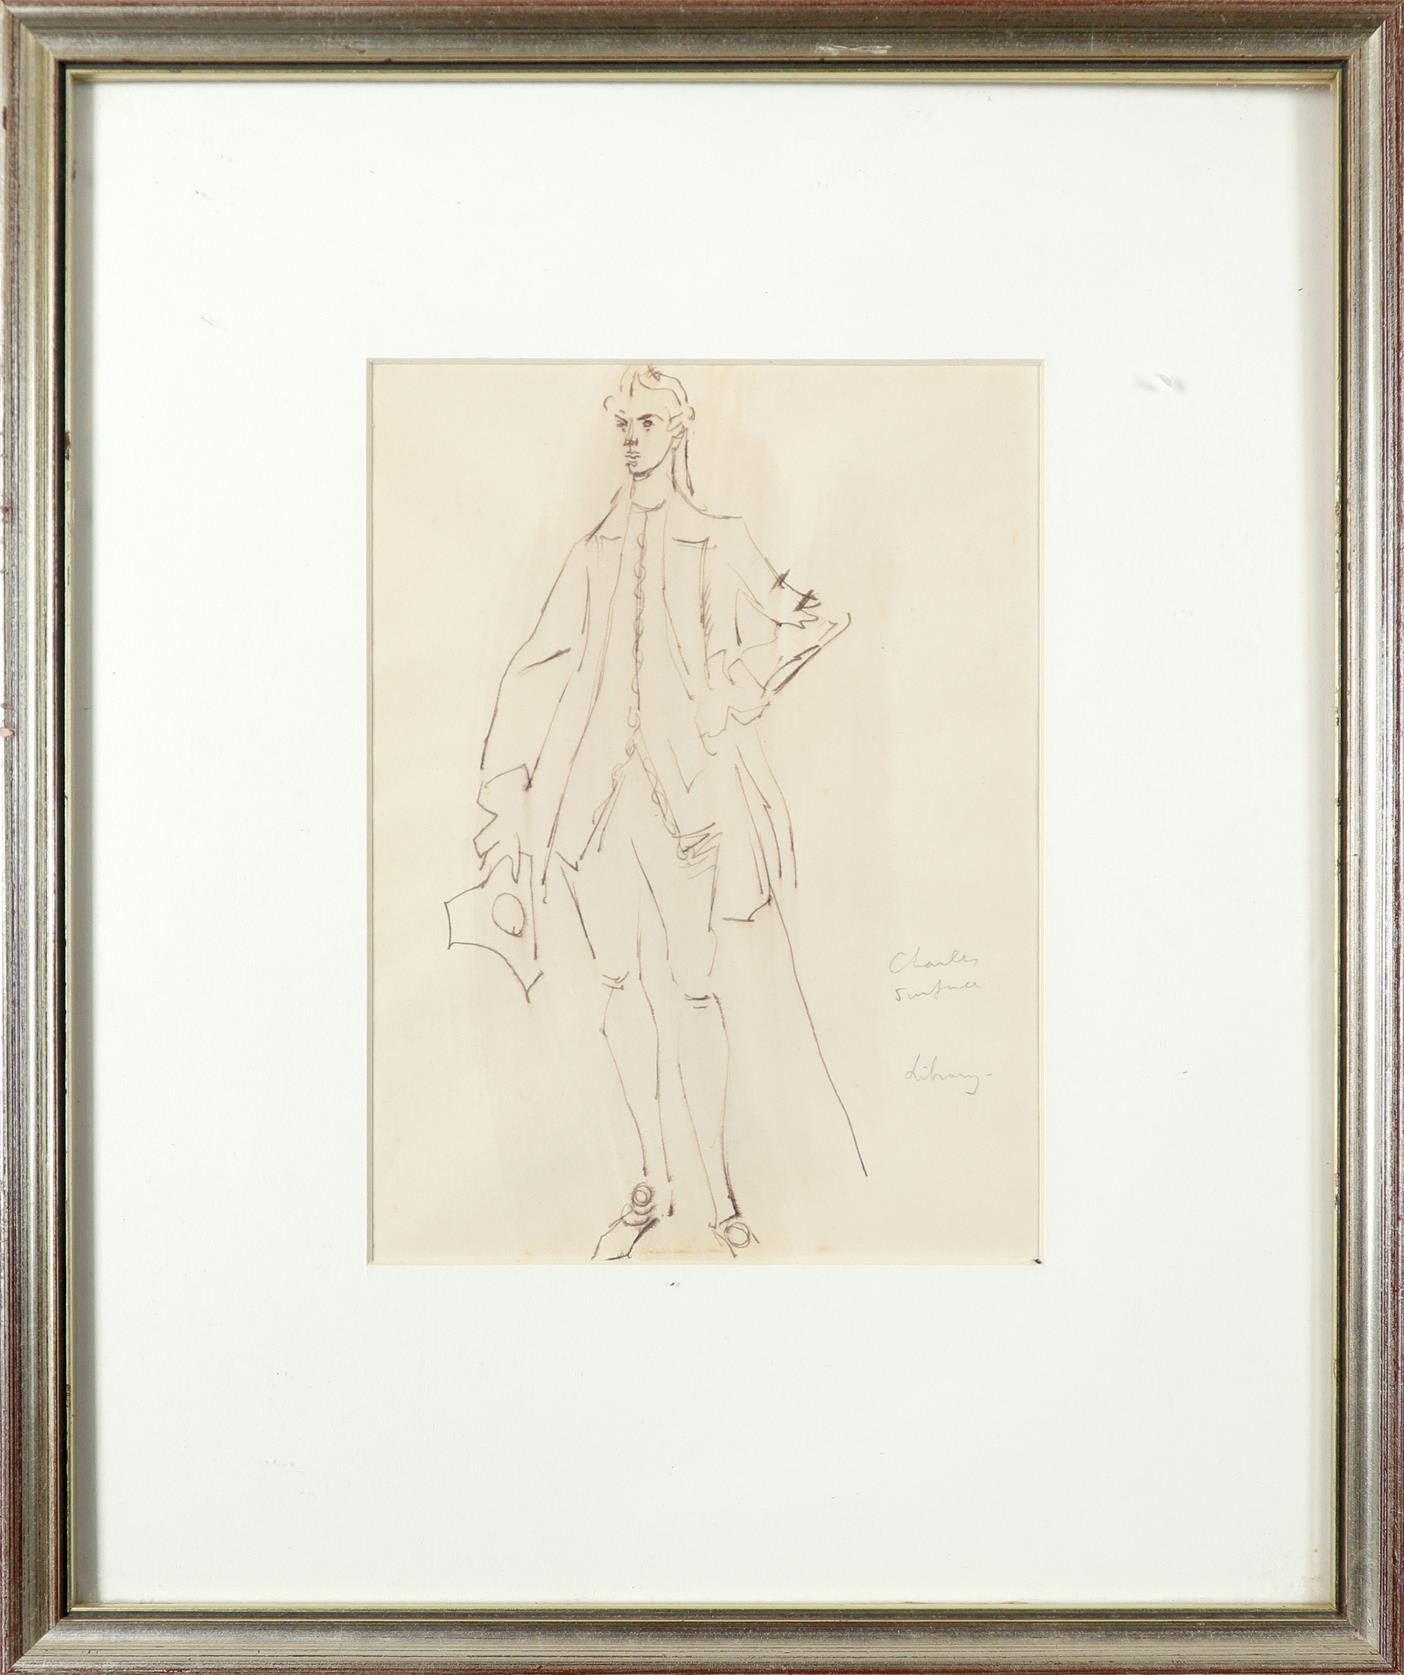 ‡Sir Cecil Beaton CBE (1904-1980) Costume designs for The School for Scandal: Lady Sneerwell; - Image 4 of 6